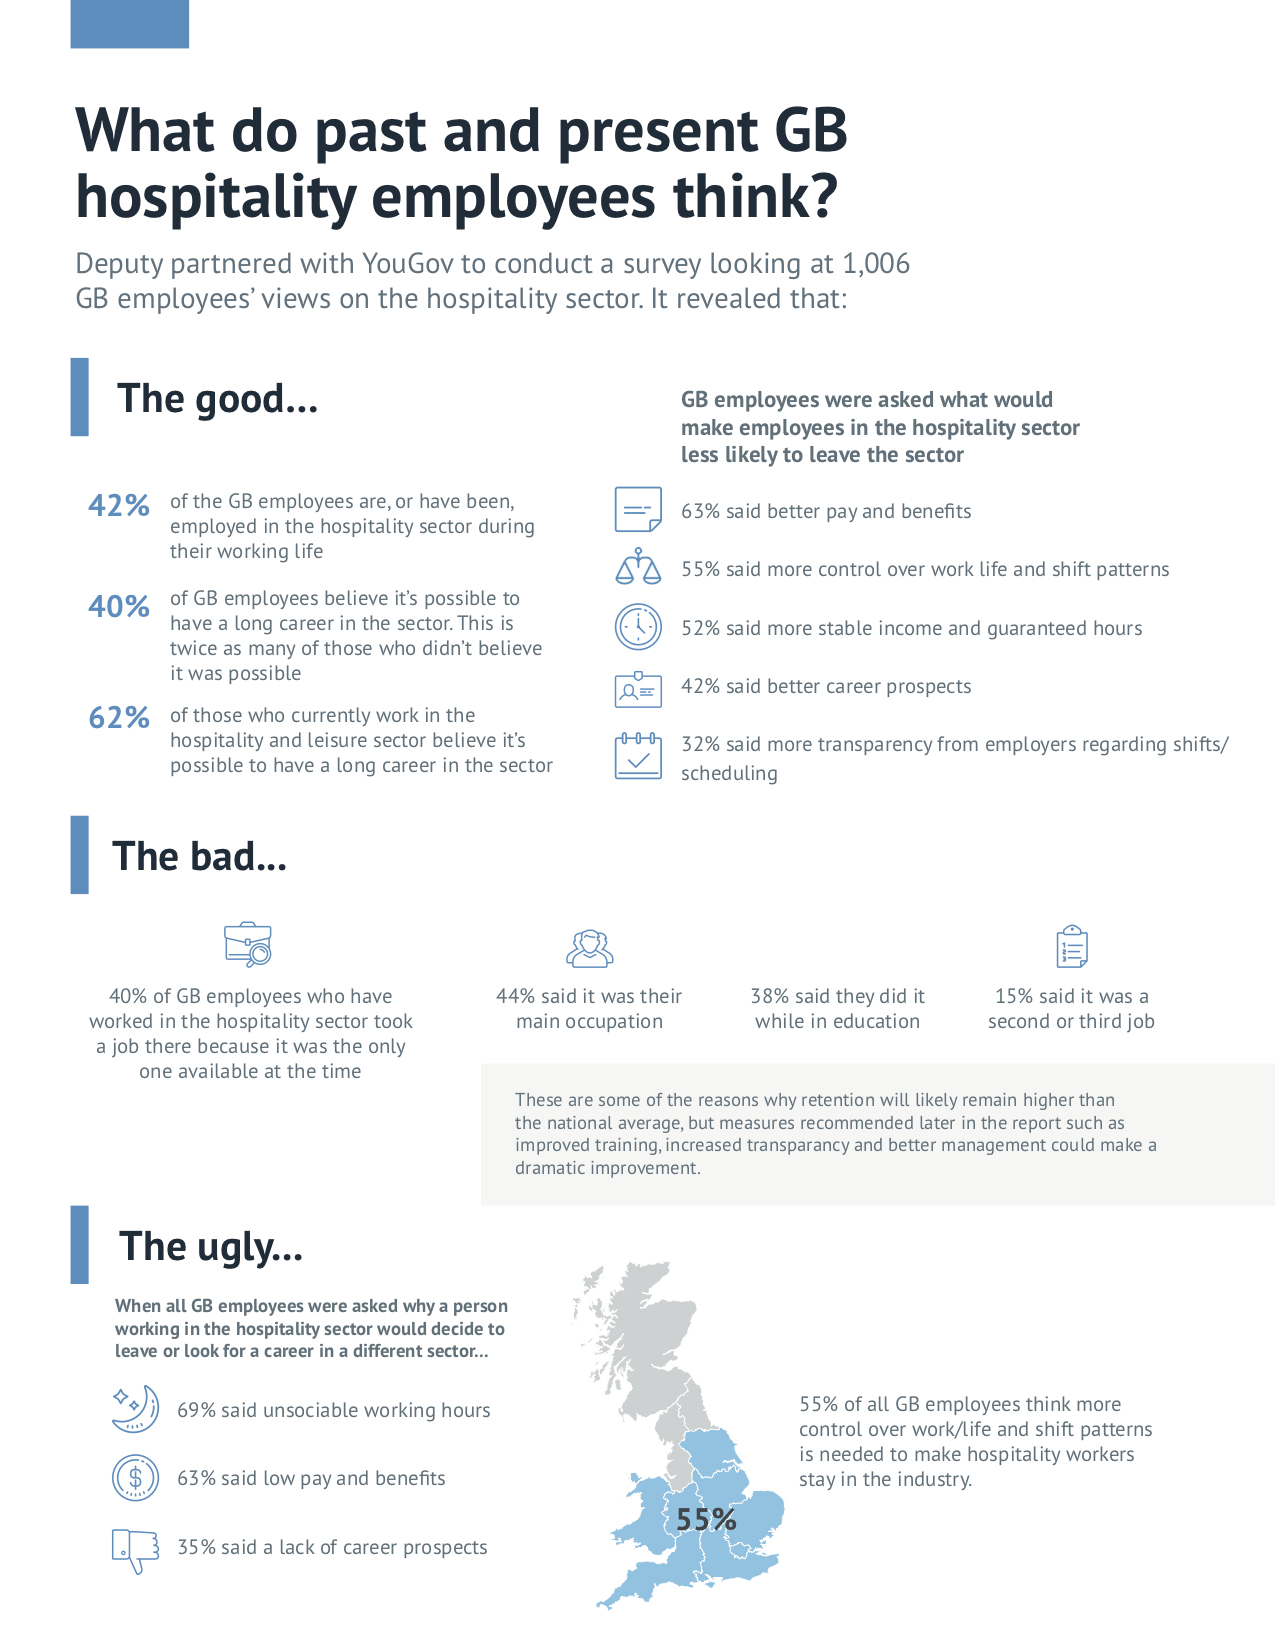 What Hospitality Workers Think